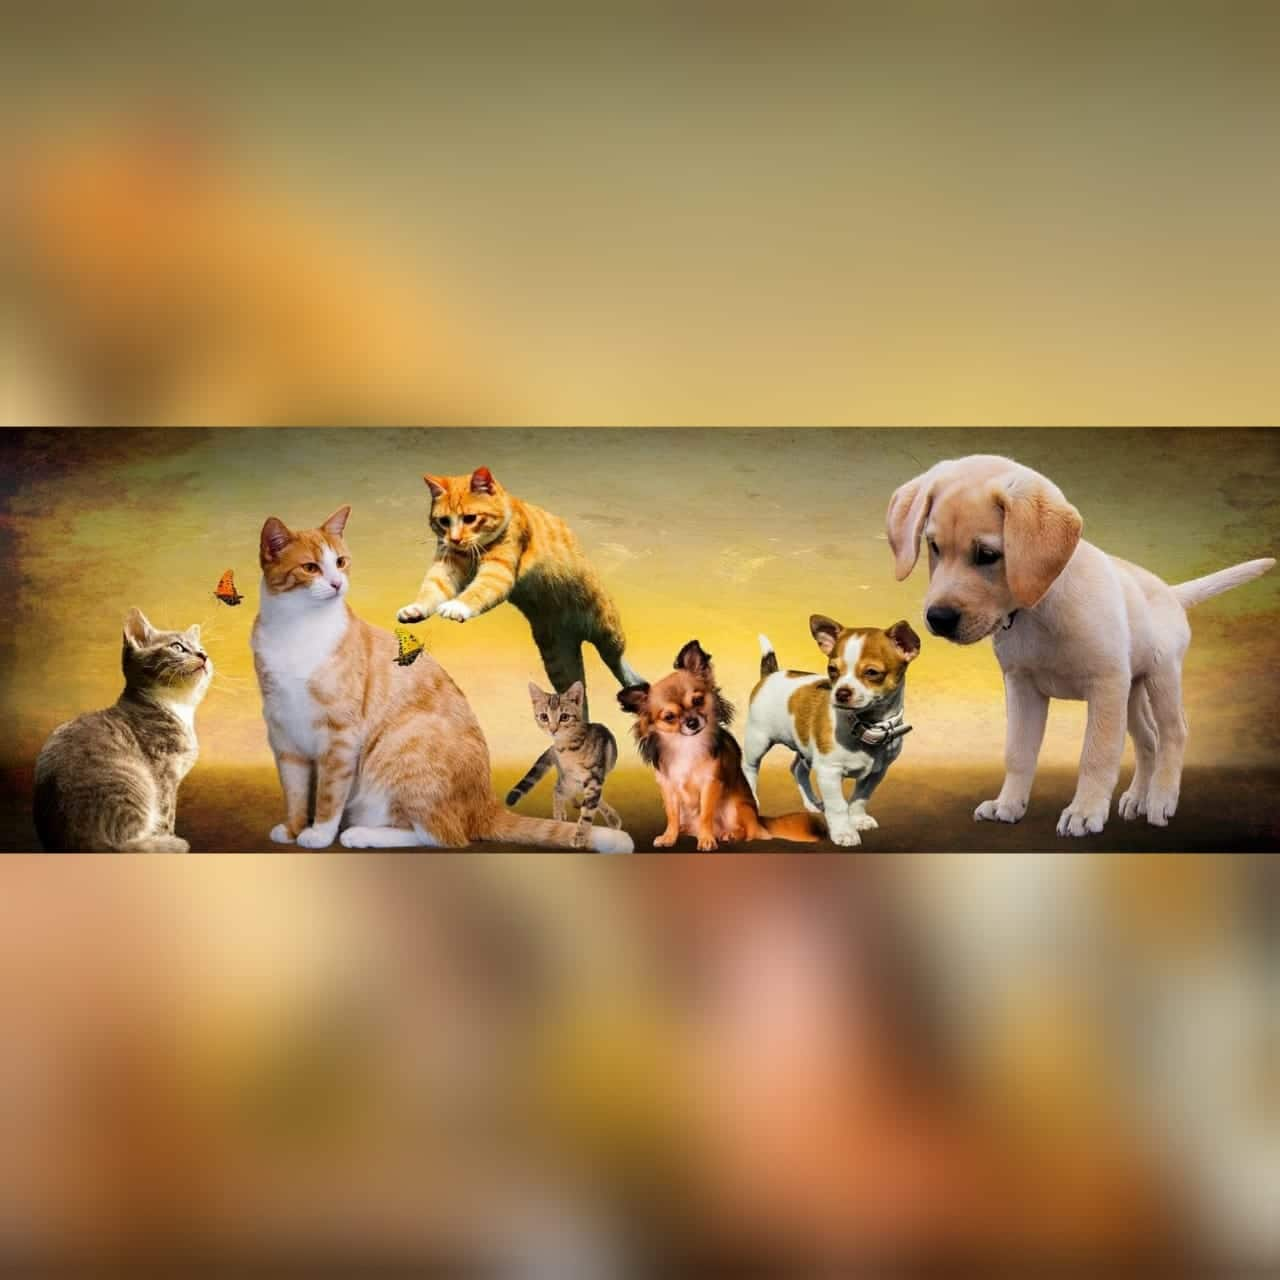 Are you seeing Dogs and cats in your dreams? want to know, what does it mean? #AtoZChallenge